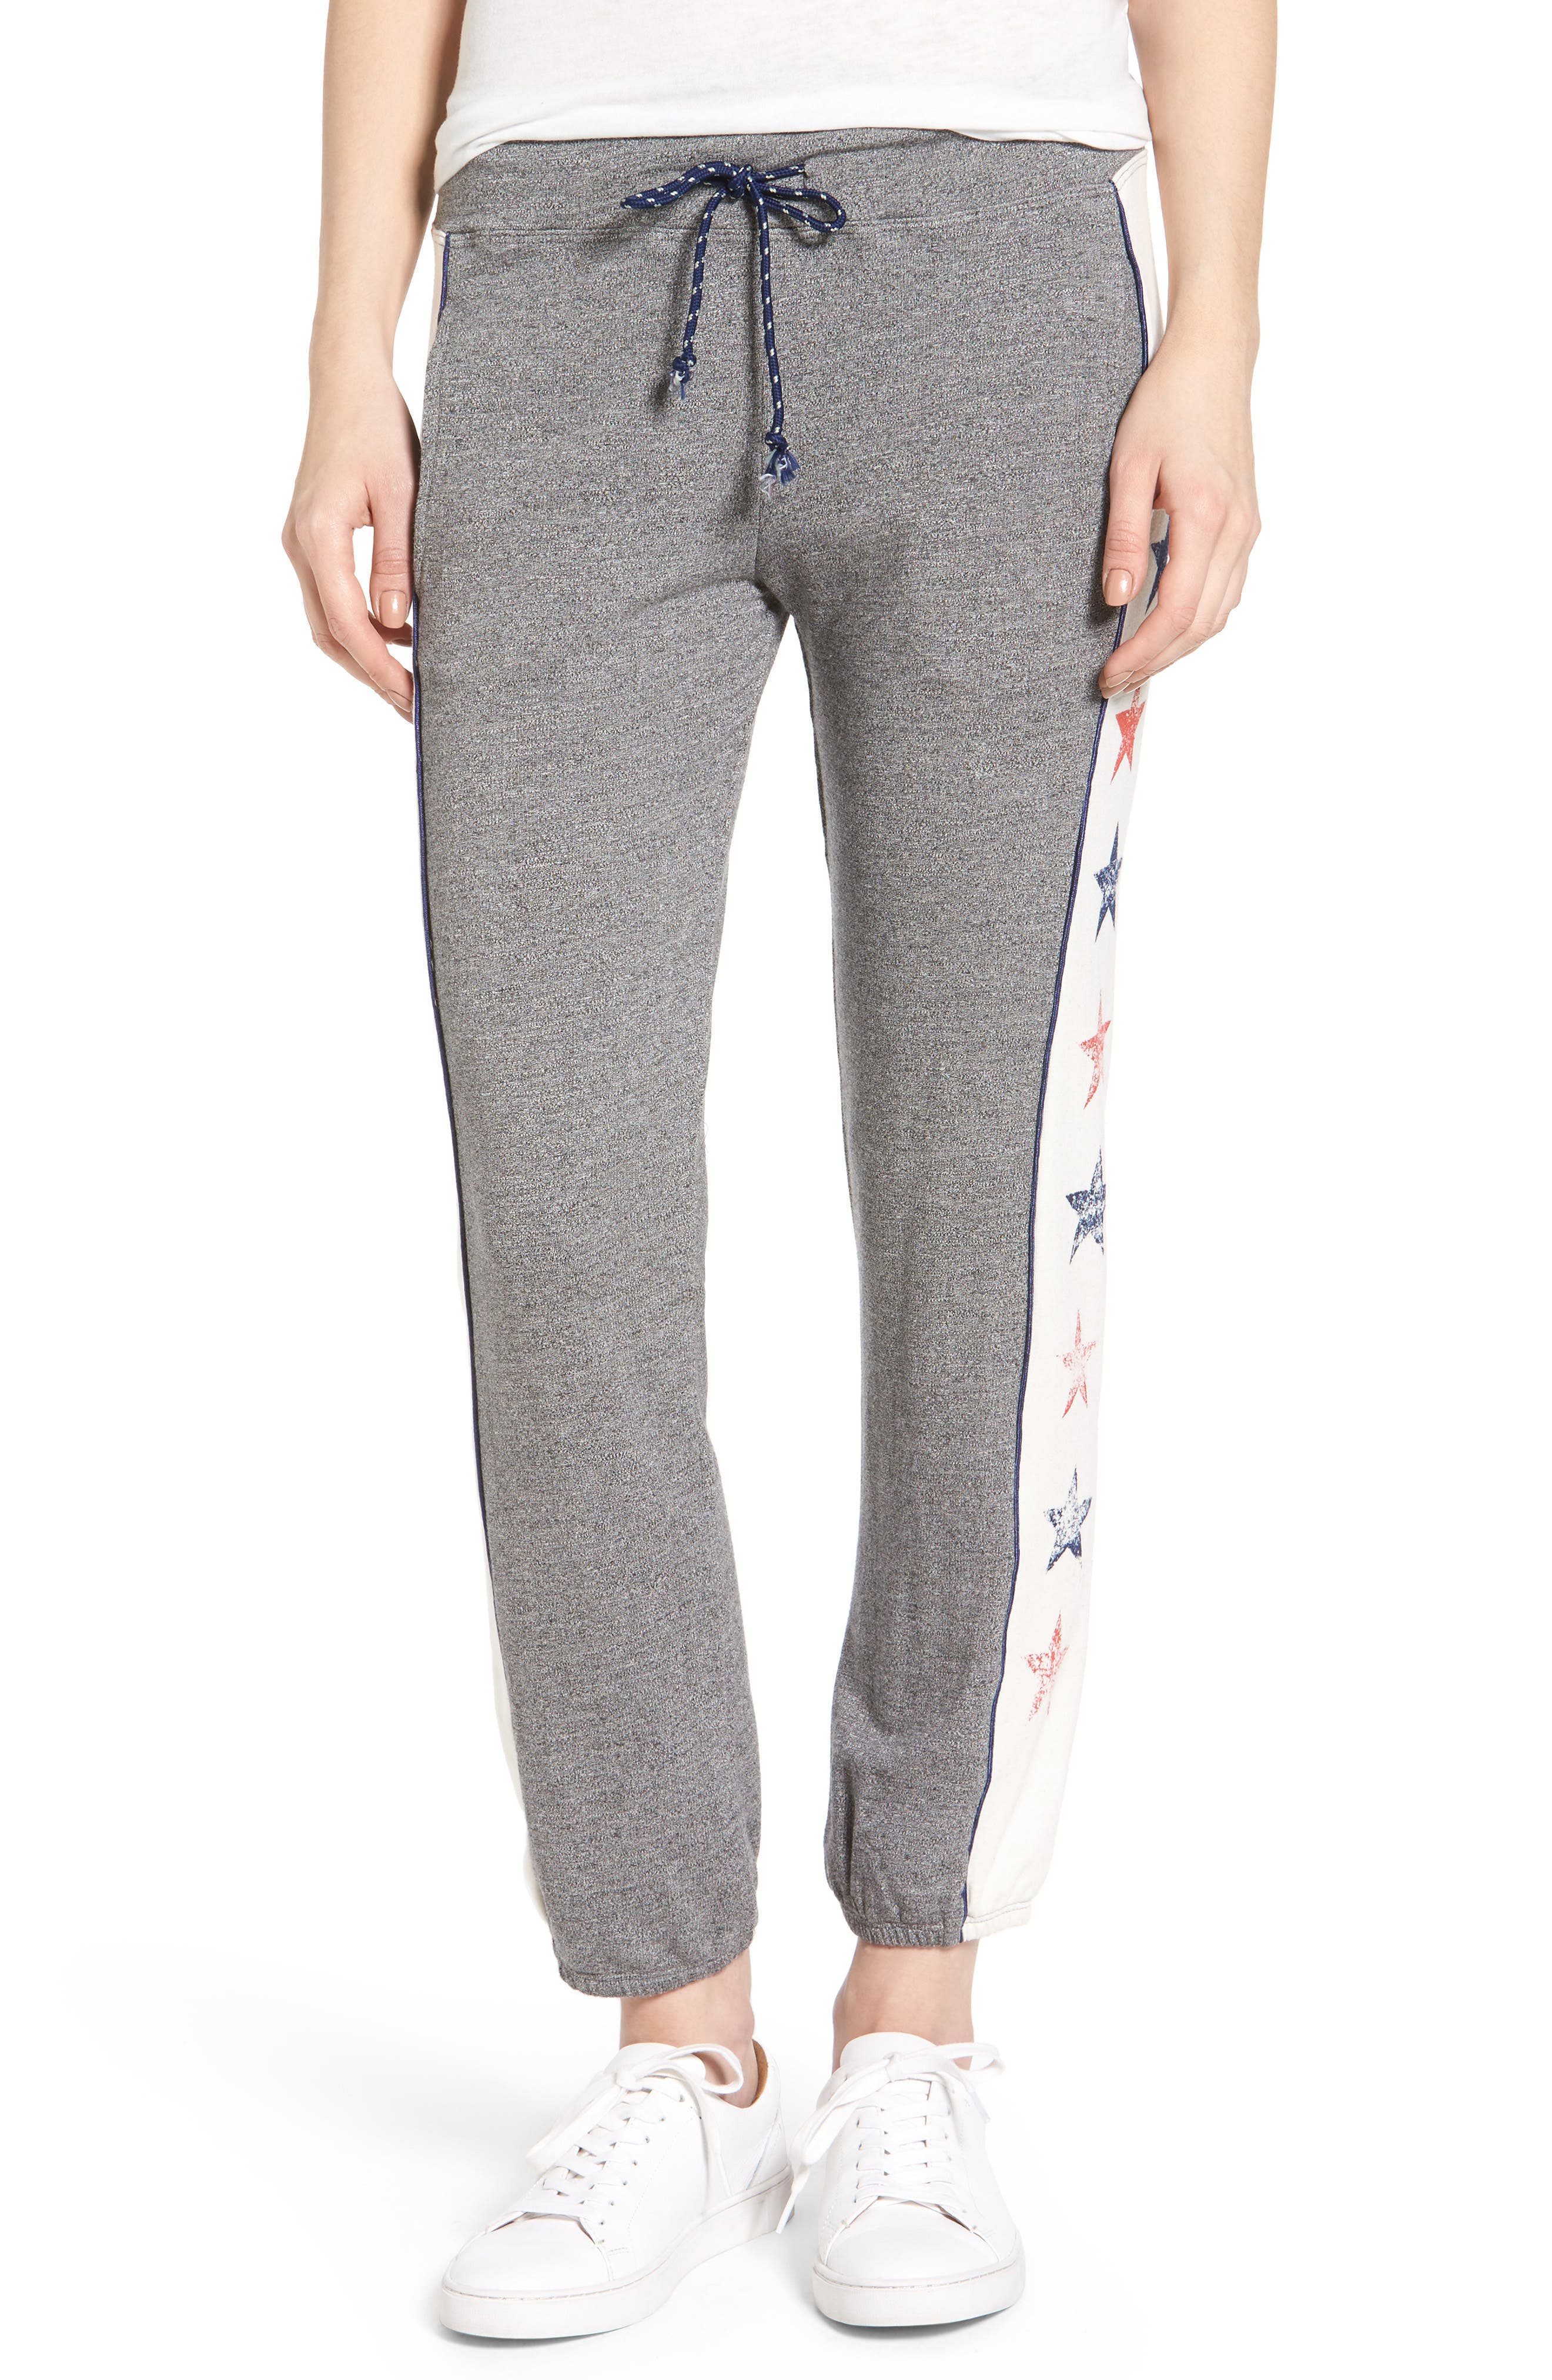 Sundry Stars Sweatpants (Nordstrom Exclusive)